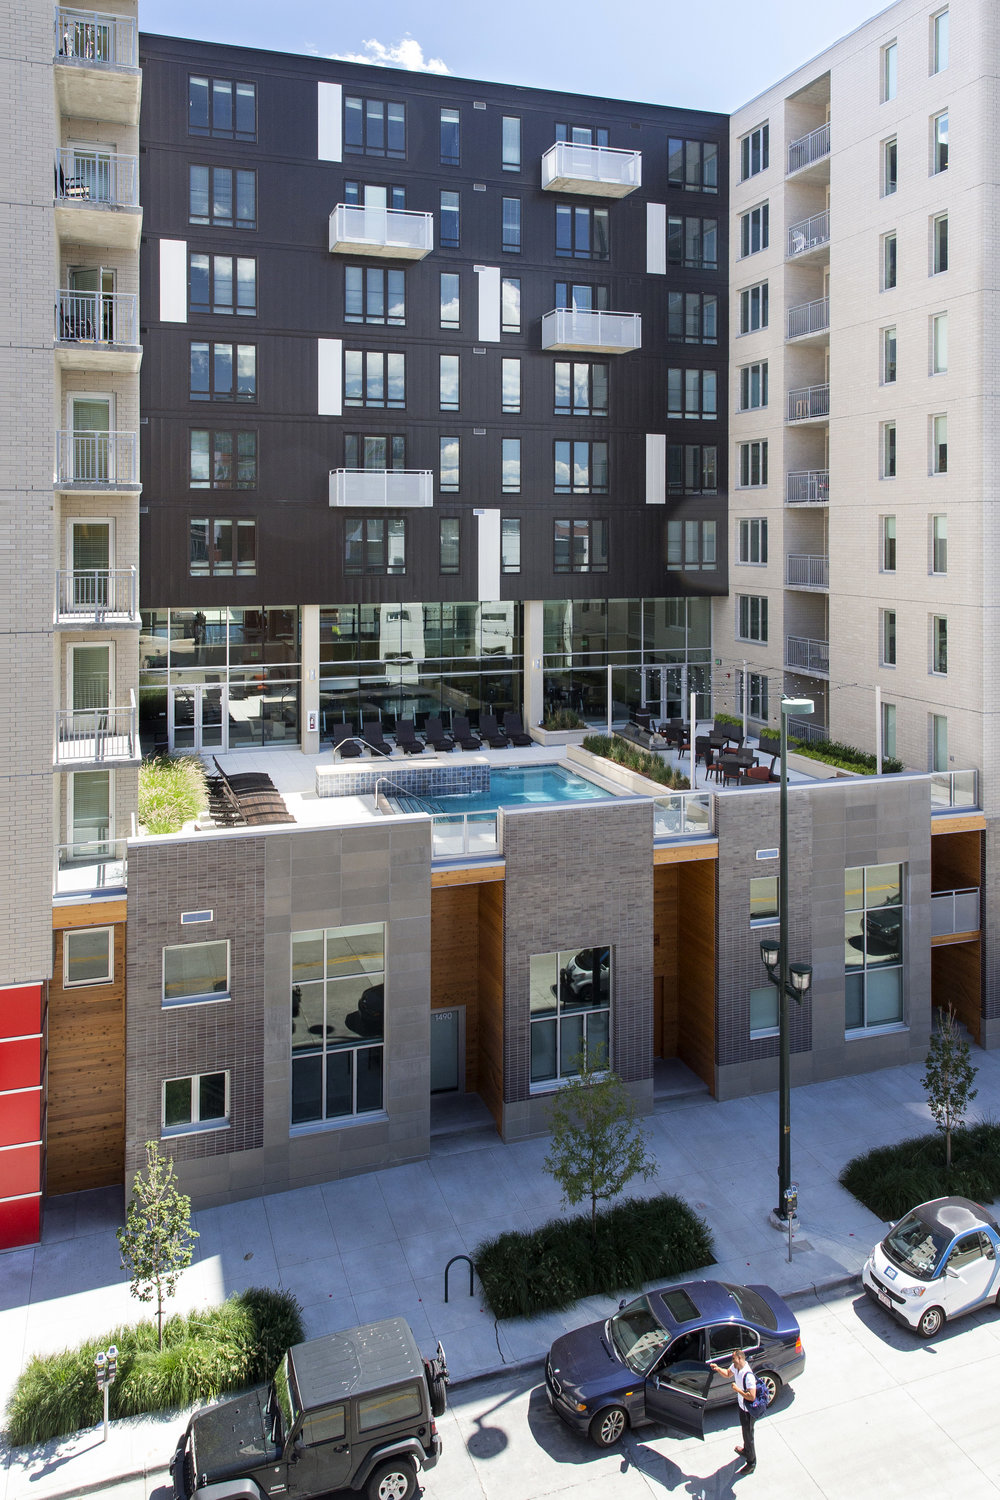 "<img src="" studioINSITE_The_Verve_Denver"" alt=""Urban Living, Multifamily Courtyard, Amenity Deck, Fire Pit, Grill Area, Shade Structure, Outdoor Garden, Landscape Architecture, Luxury Living, the Douglas, Denver, CO, Colorado Courtyards, Amenity Spaces, Great Courtyard Designs"" title=""The Verve""/>"